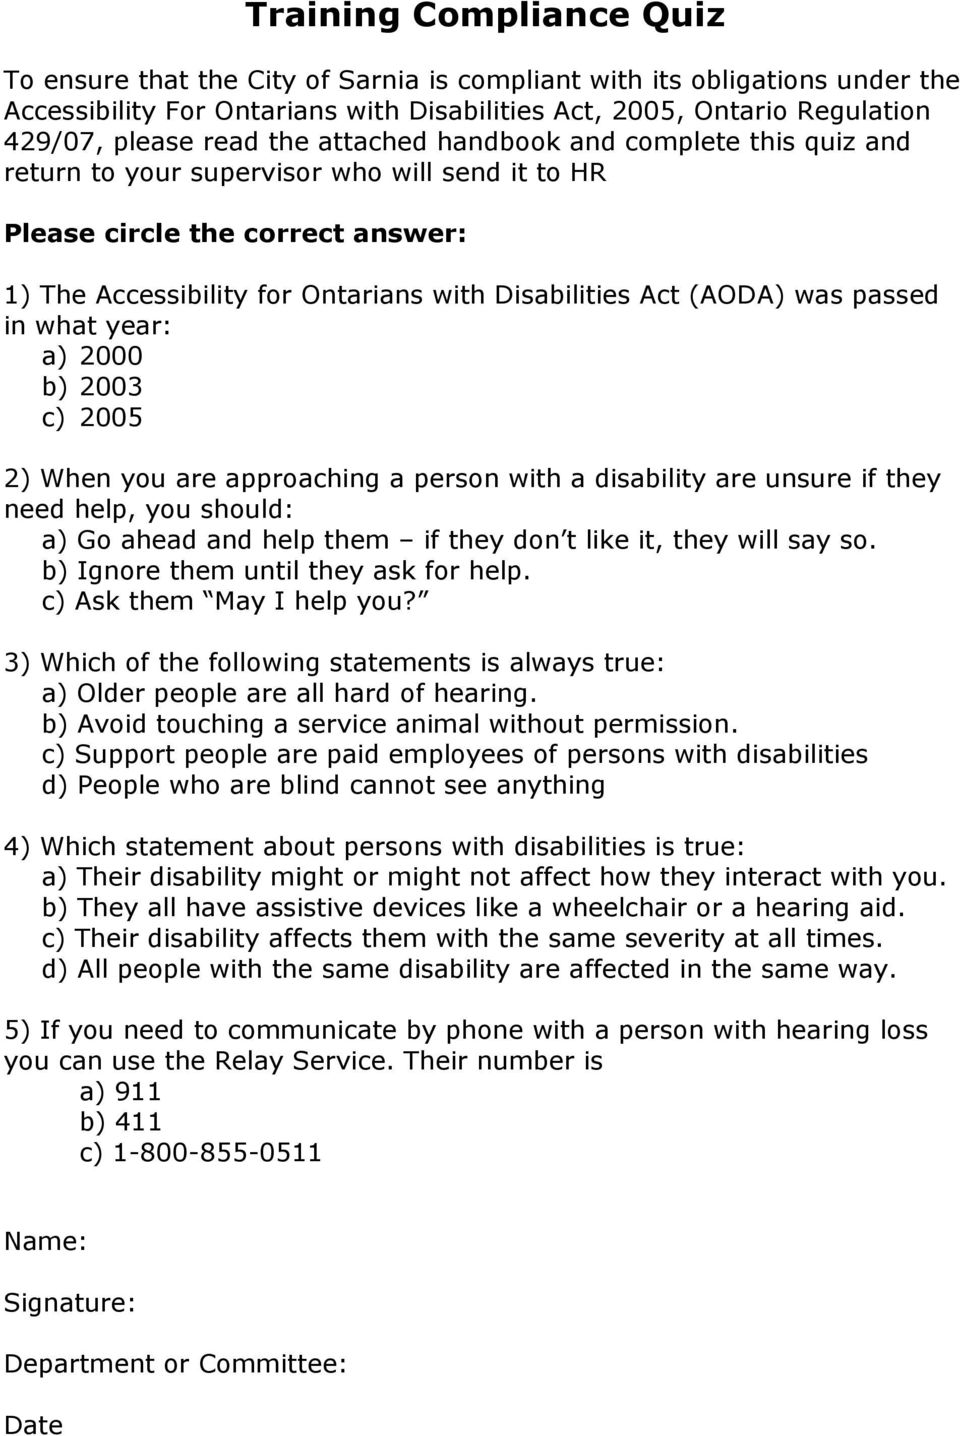 passed in what year: a) 2000 b) 2003 c) 2005 2) When you are approaching a person with a disability are unsure if they need help, you should: a) Go ahead and help them if they don t like it, they